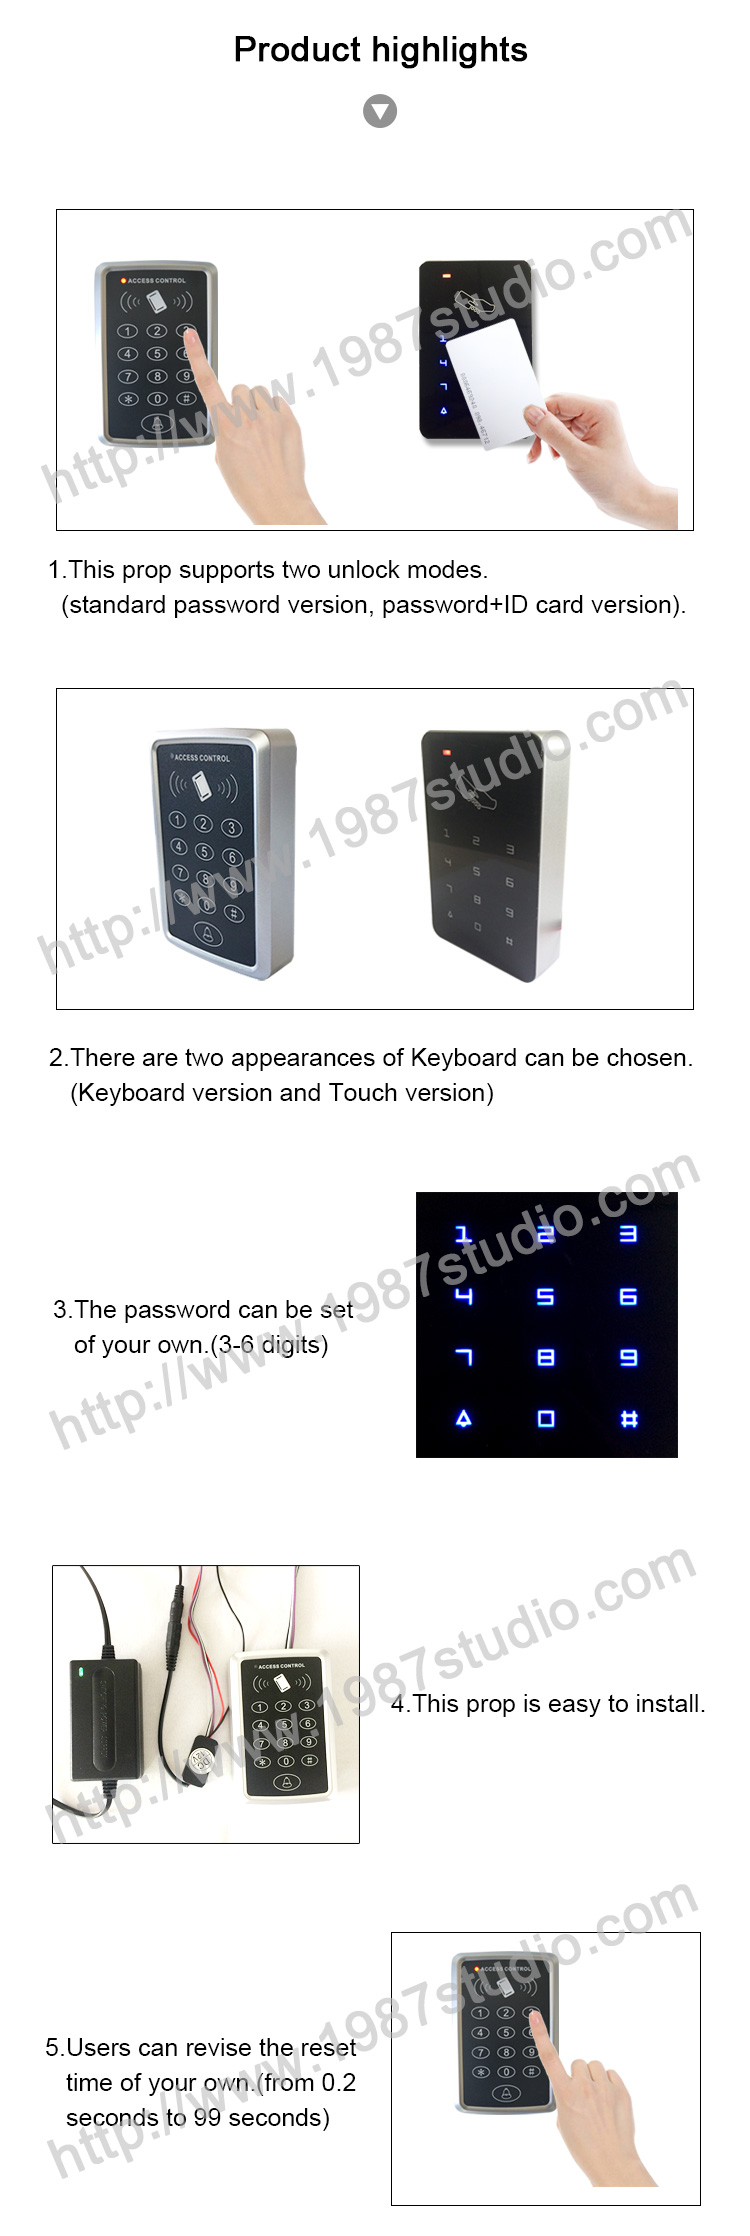 Cipher keyboard escape room prop